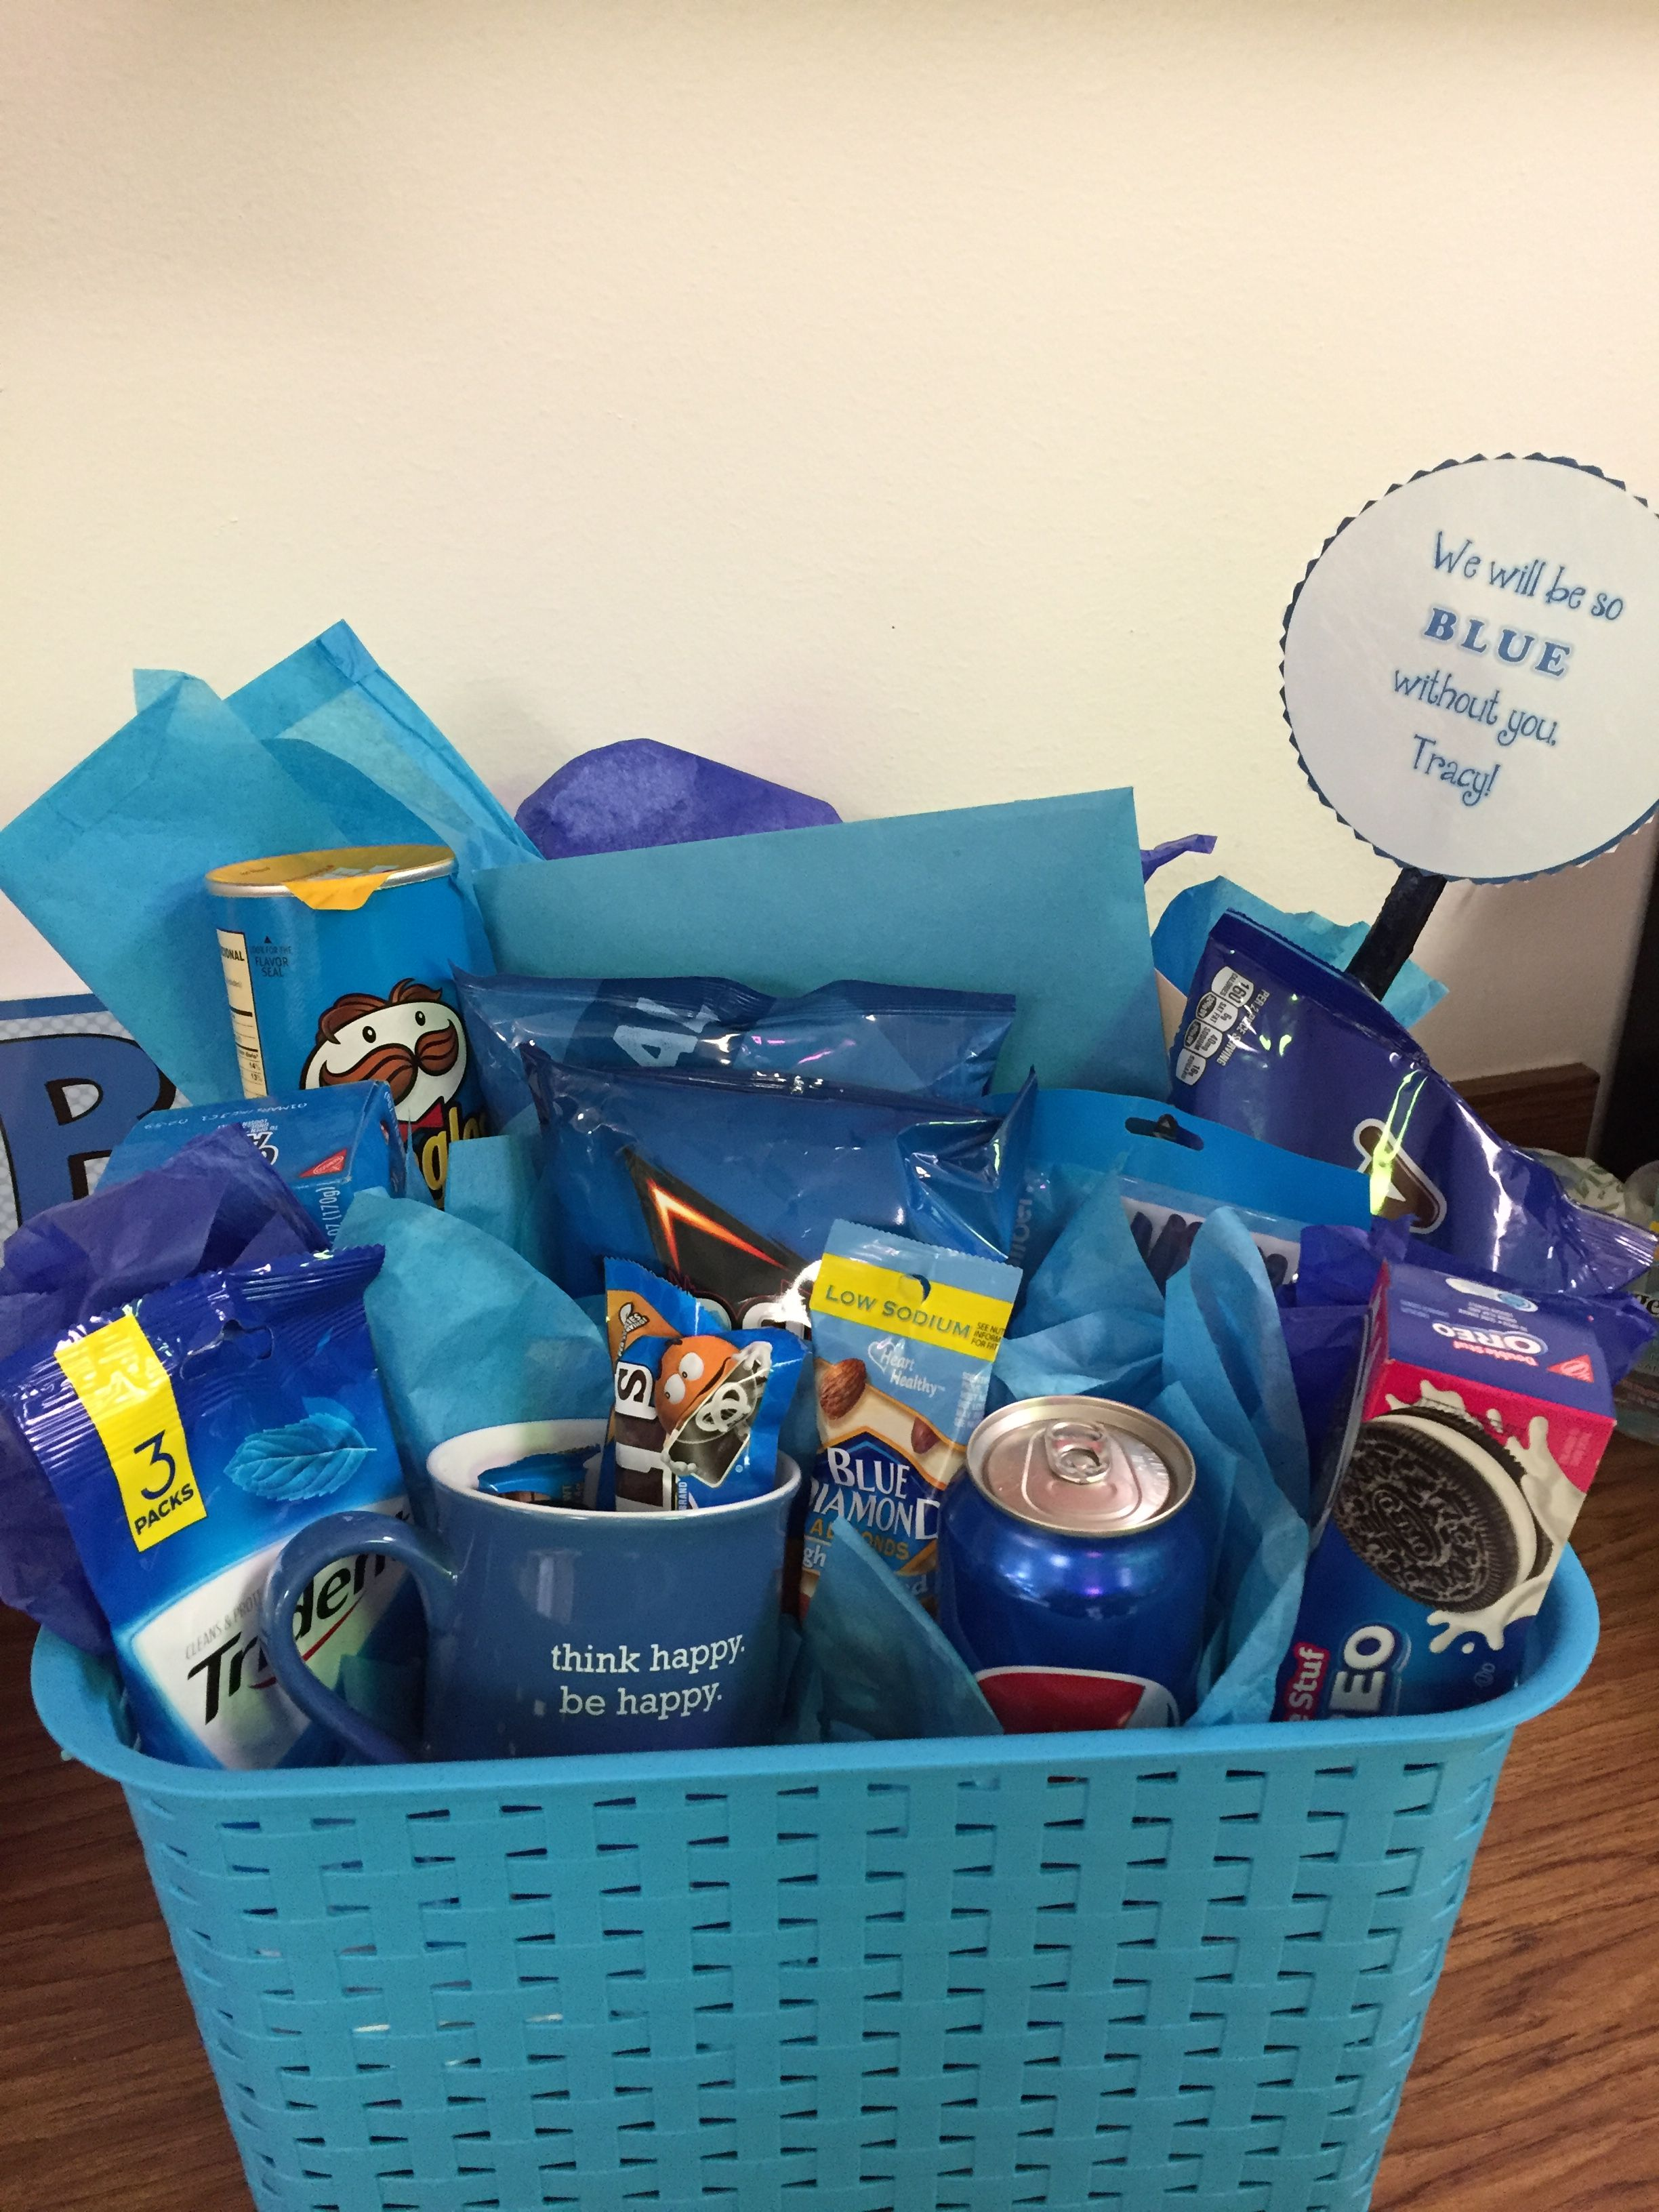 coworker leaving blue without you going away basket